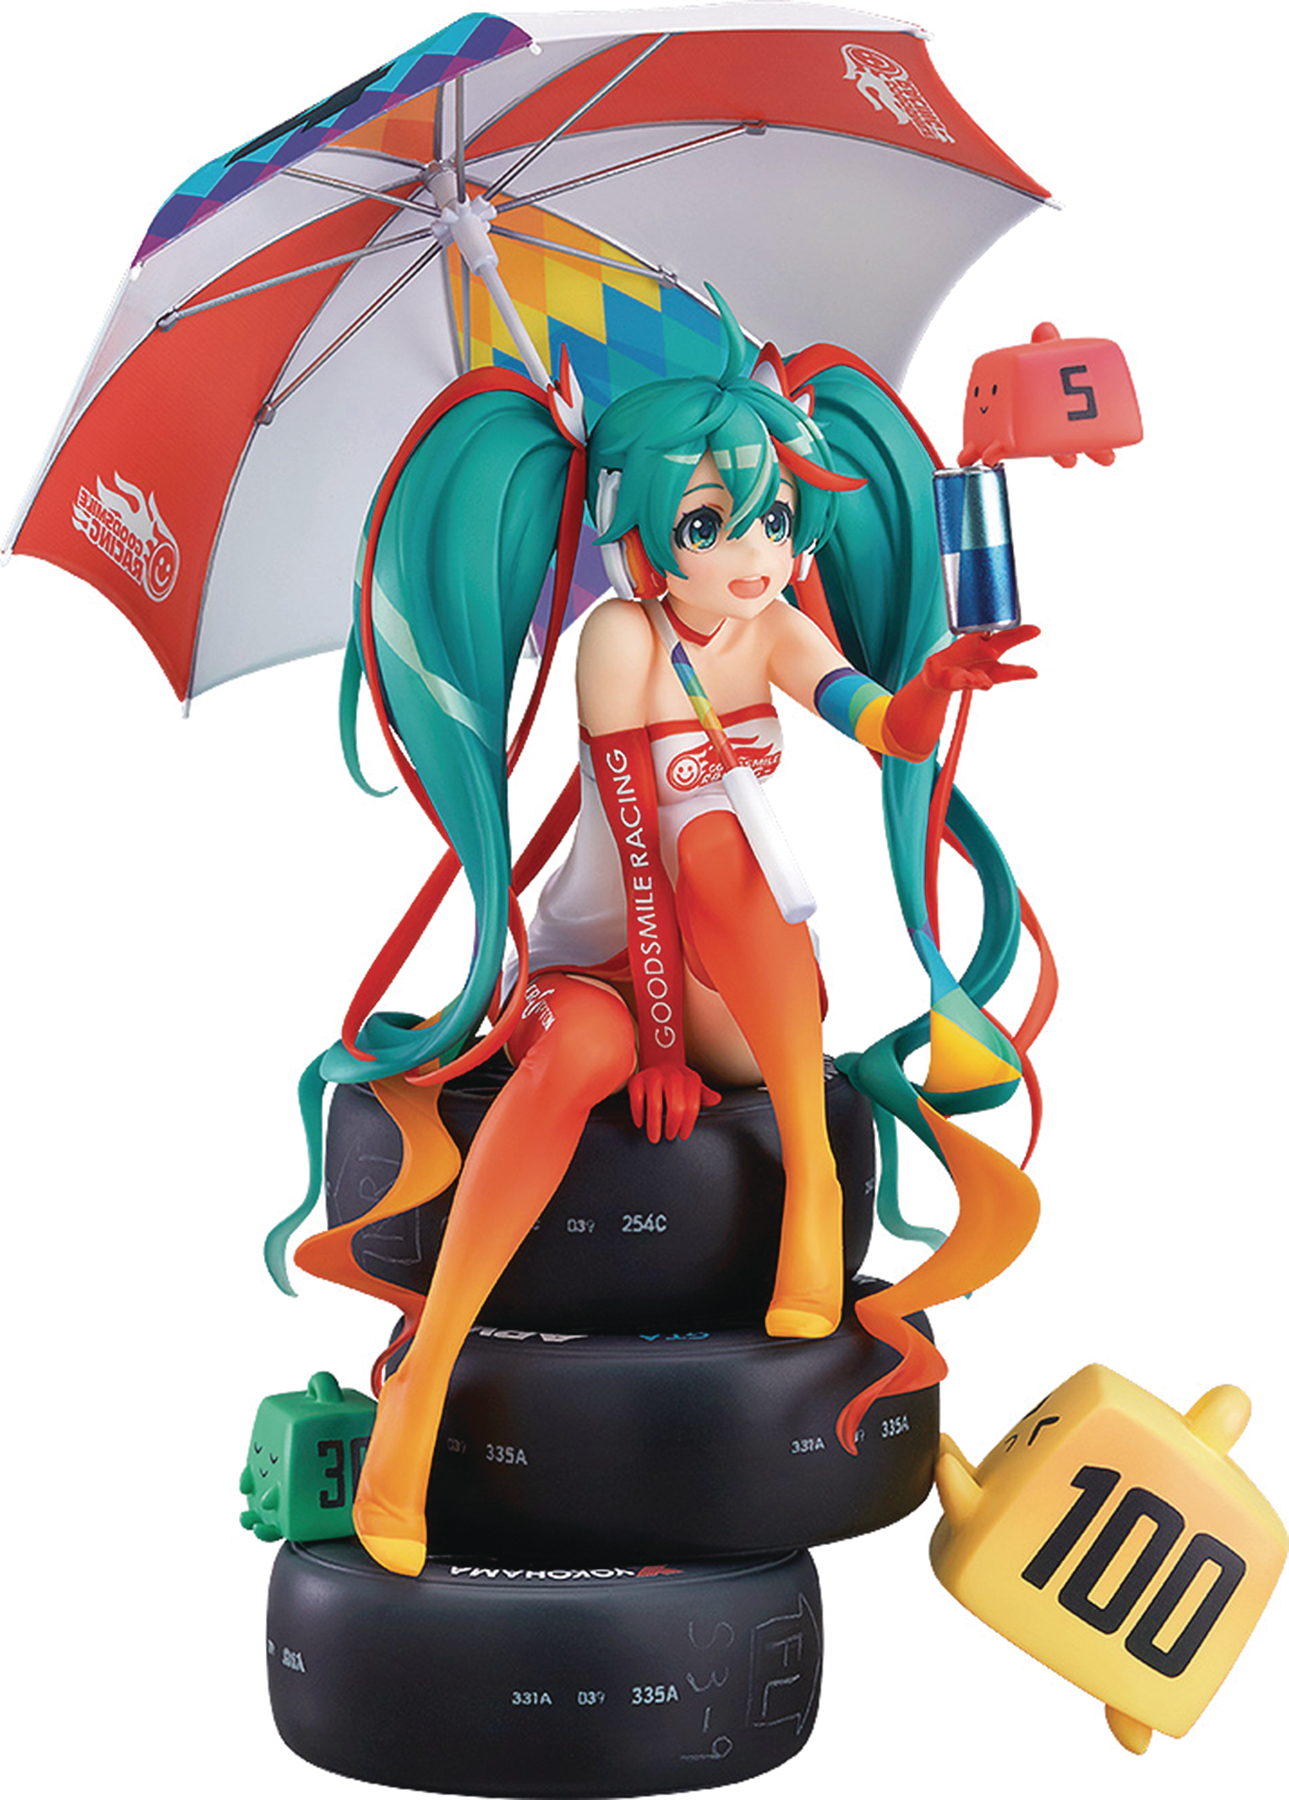 RACING MIKU 1/8 SCALE PVC FIG 2016 VER